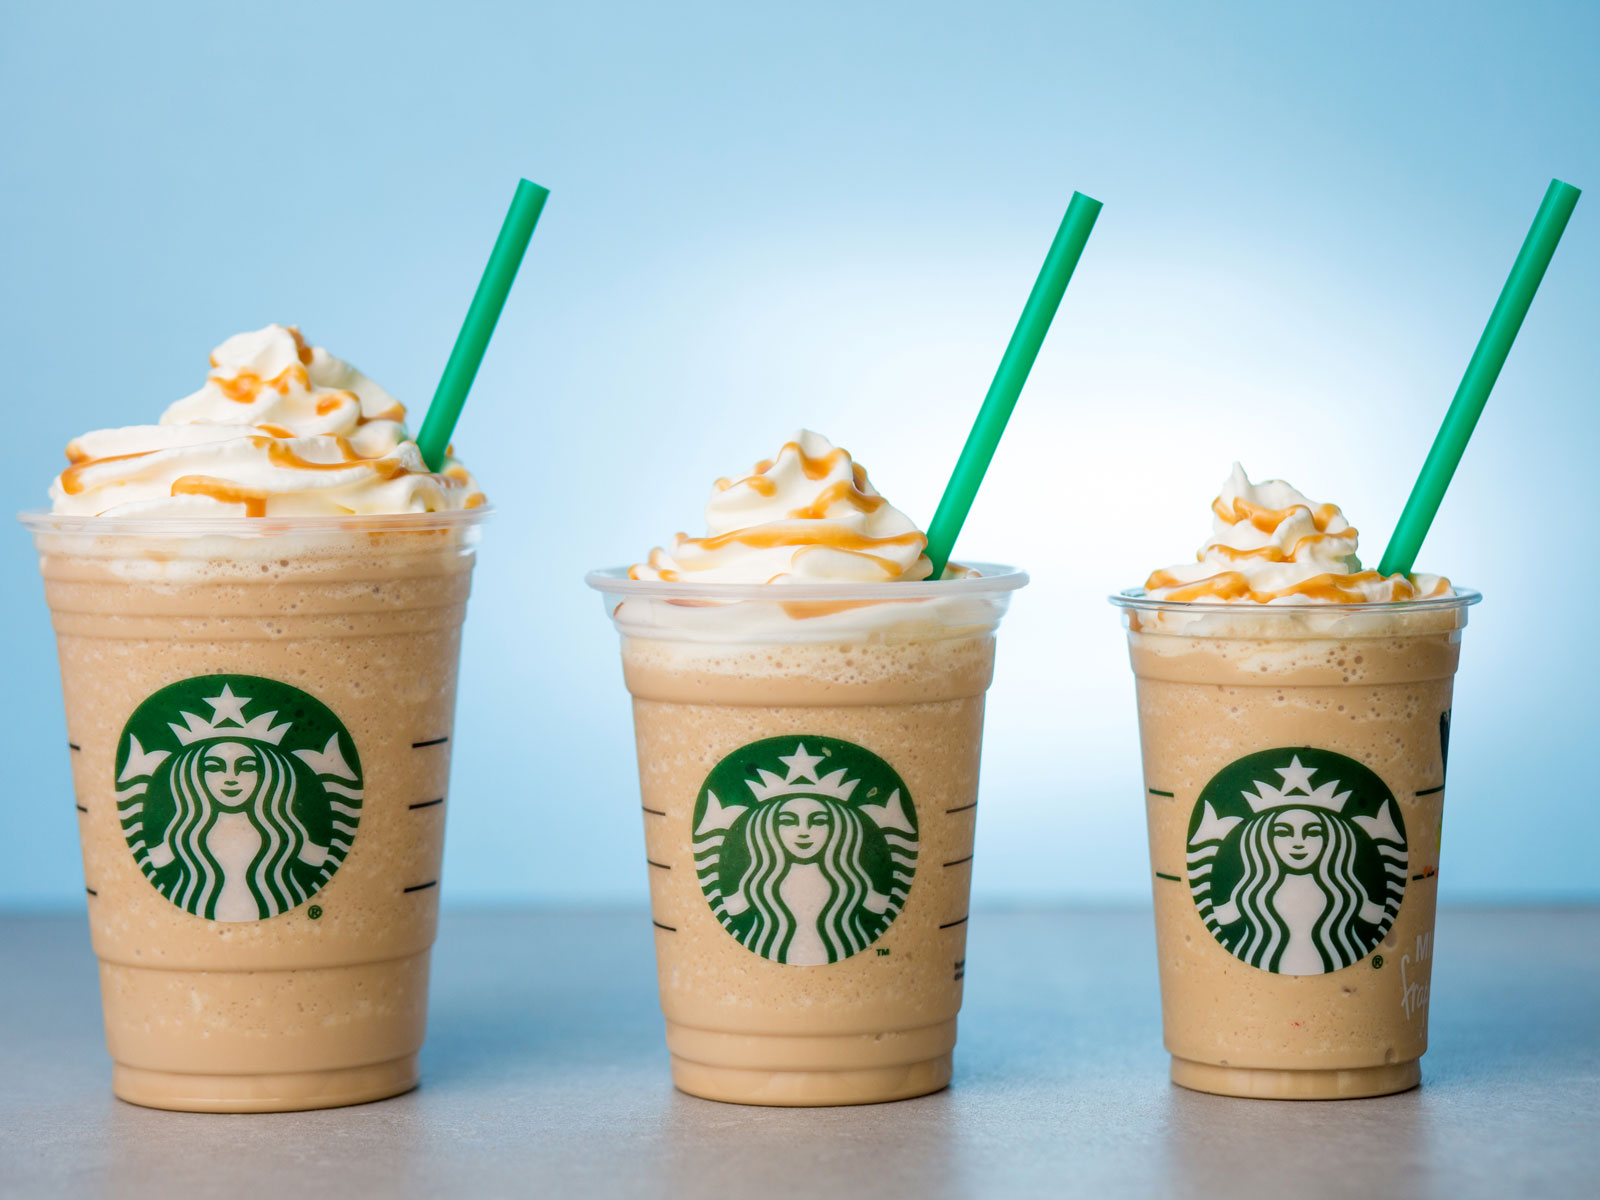 Starbucks Is Testing Lower-Calorie Frappuccinos (And You May Already Be Drinking Them)